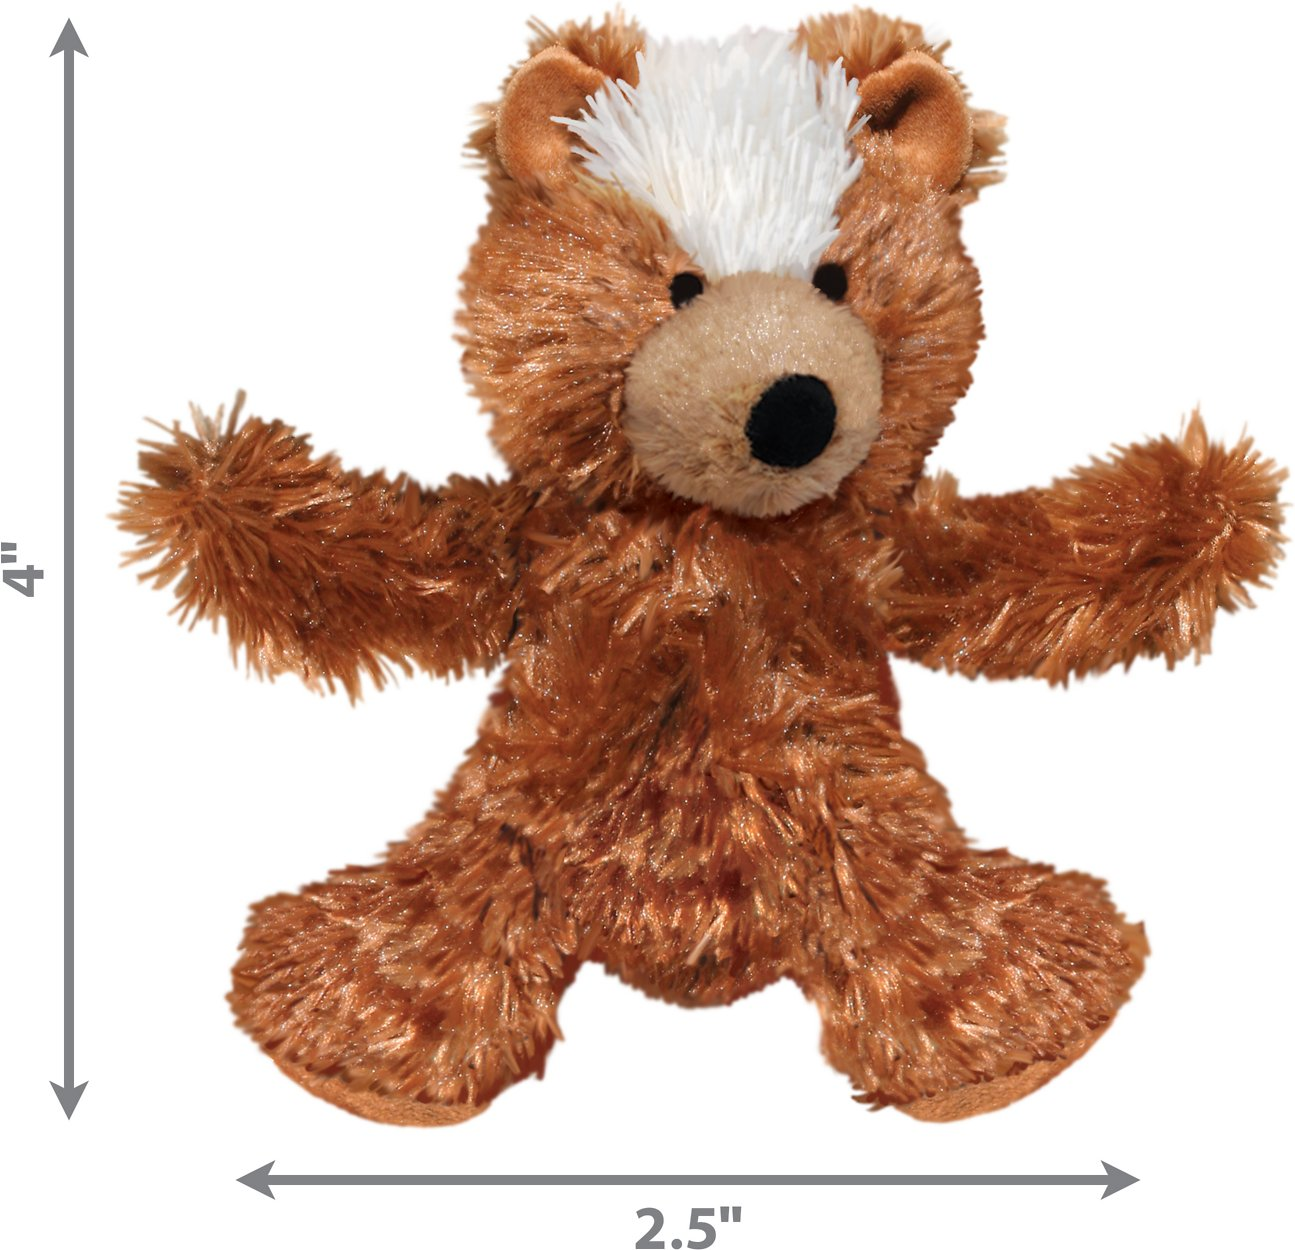 Kong Plush Teddy Bear Dog Toy X Small Chewy Com